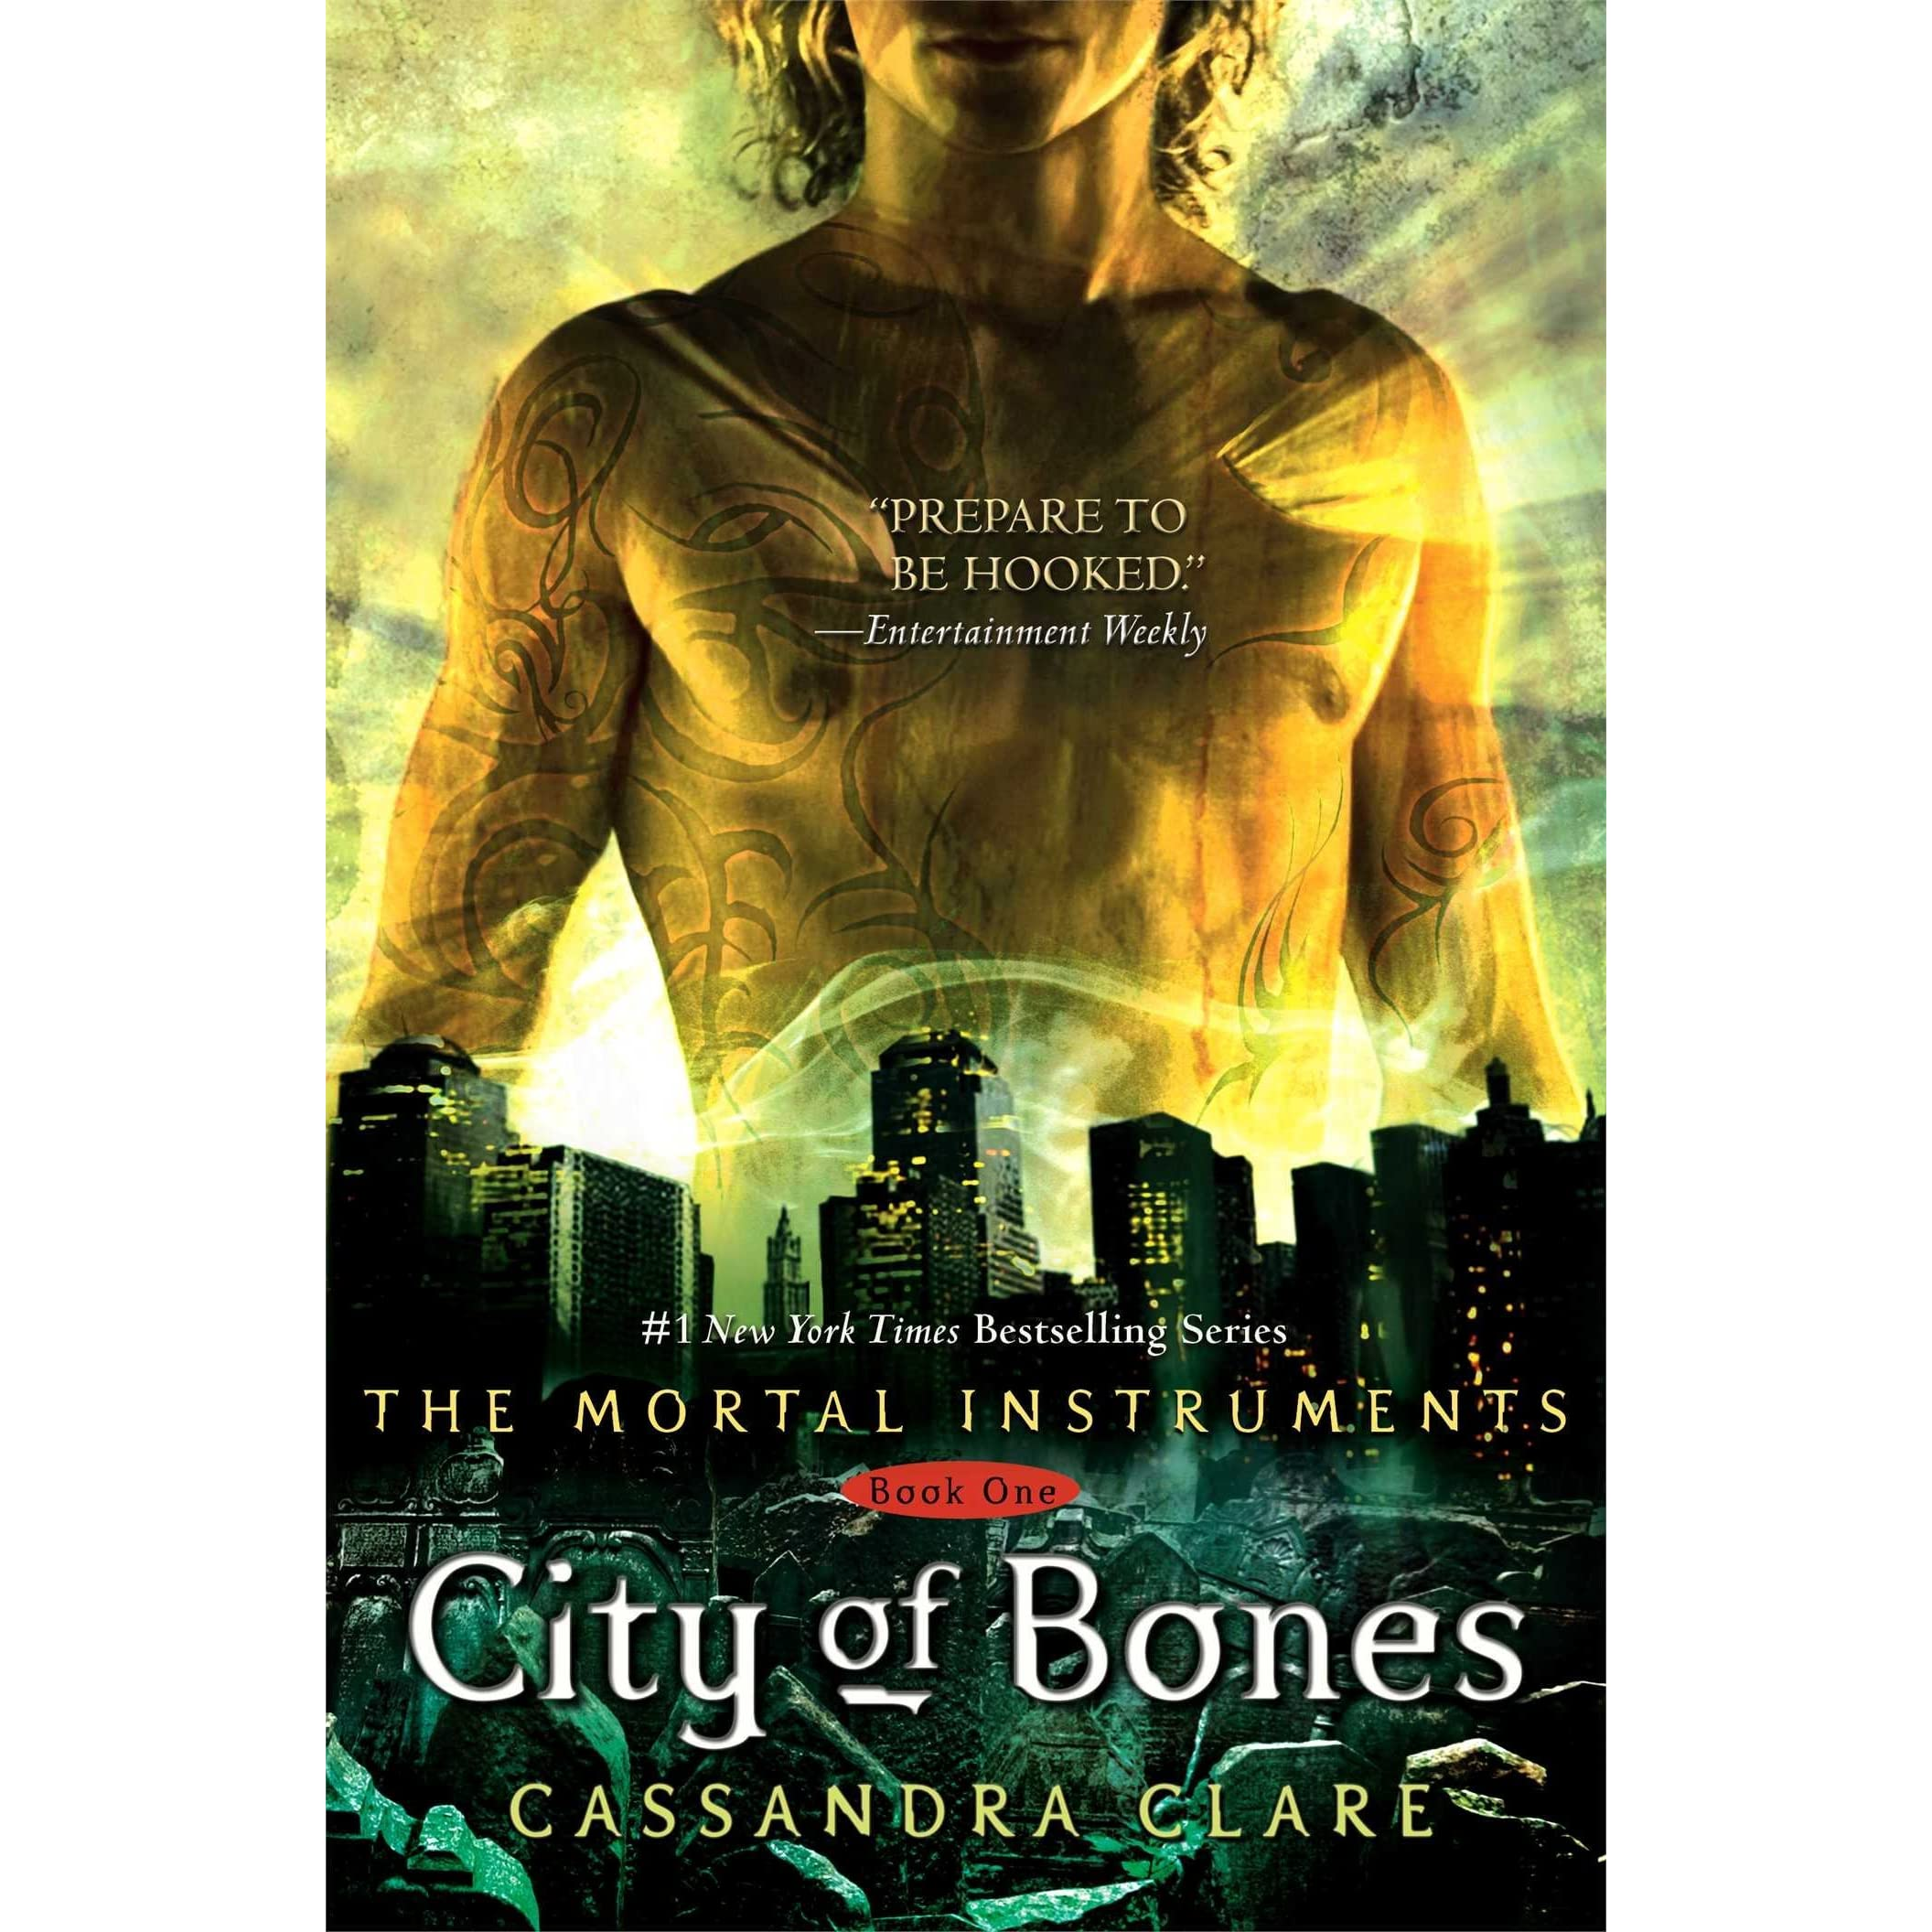 City of Bones The Mortal Instruments 1 by Cassandra Clare